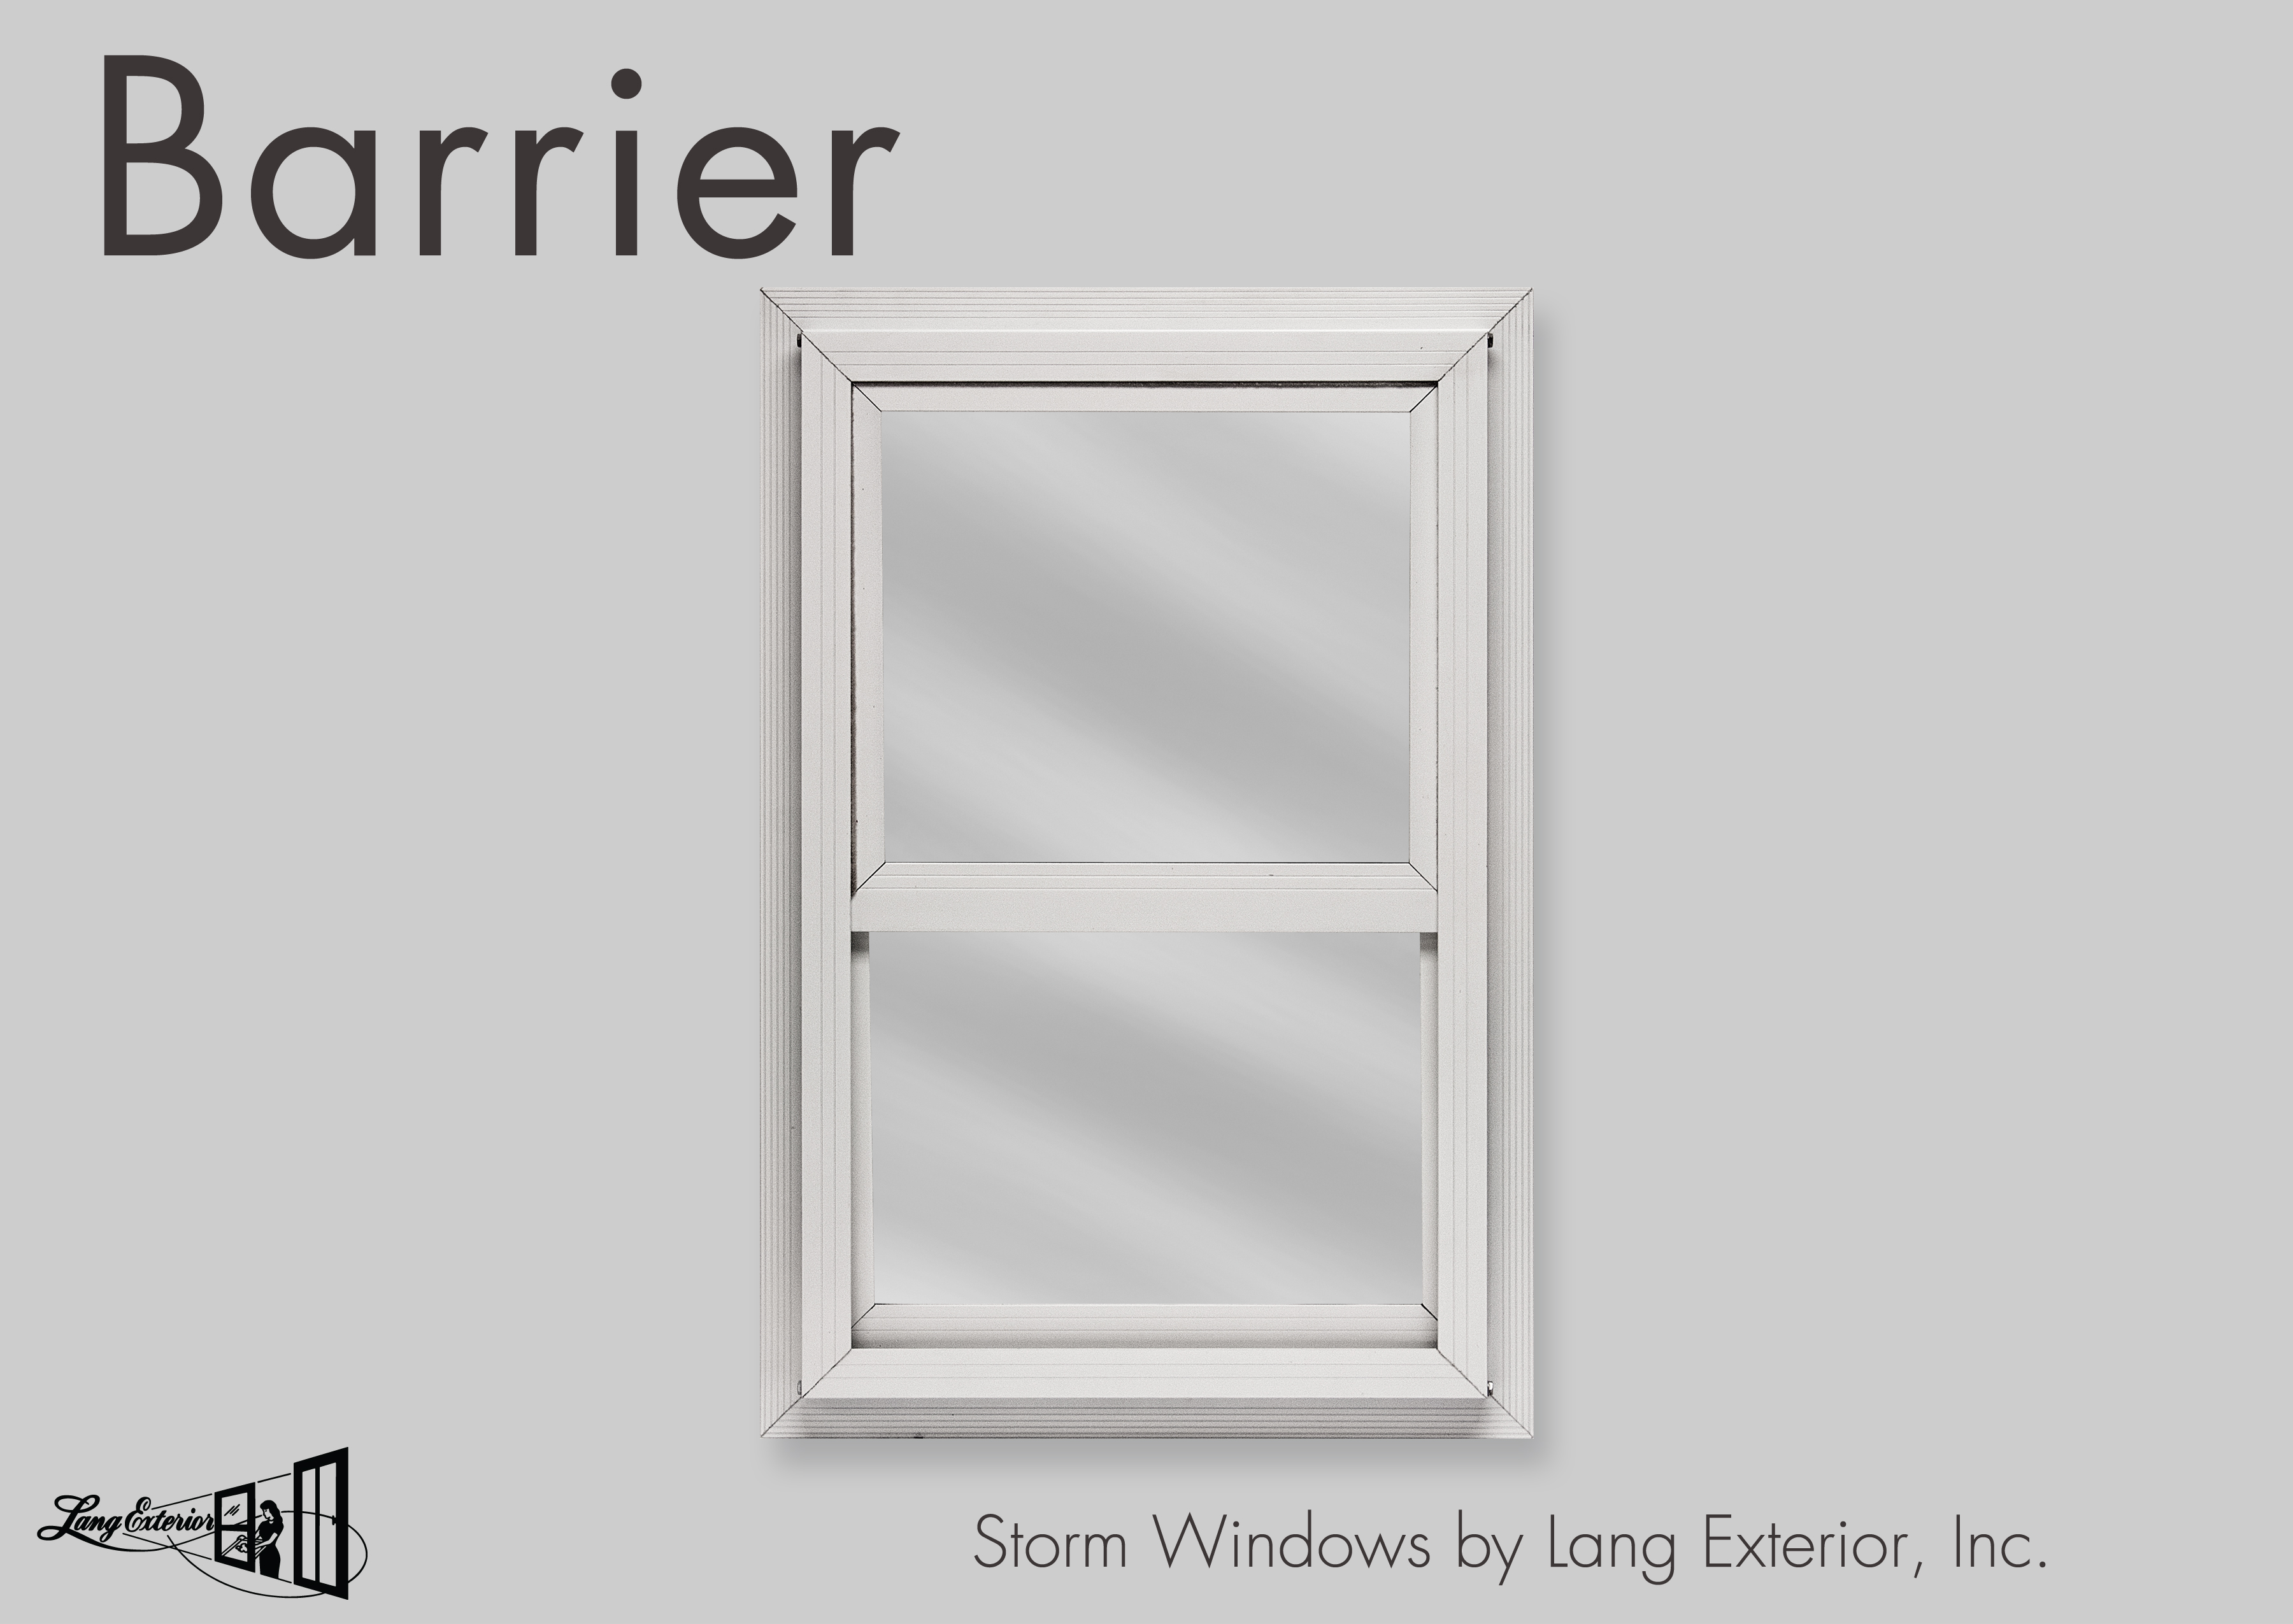 Barrier Storm Windows